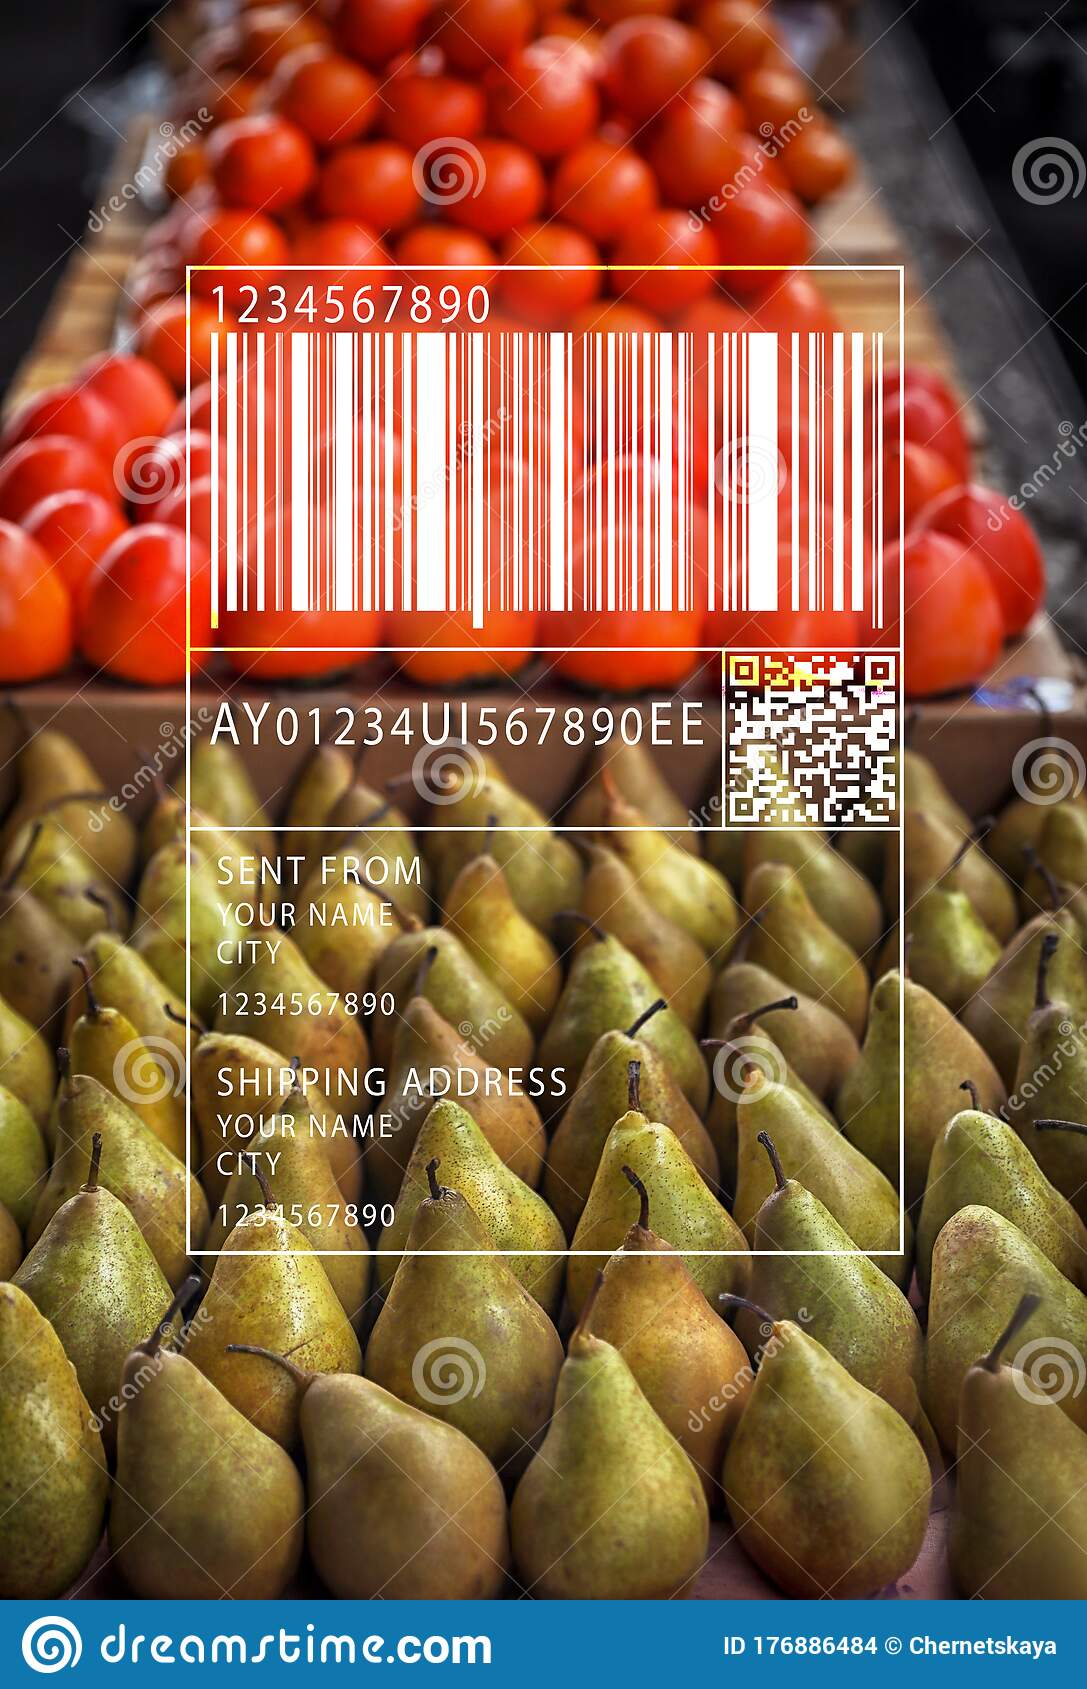 Barcode And Tasty Fruits On Counter At Wholesale Market Stock Photo